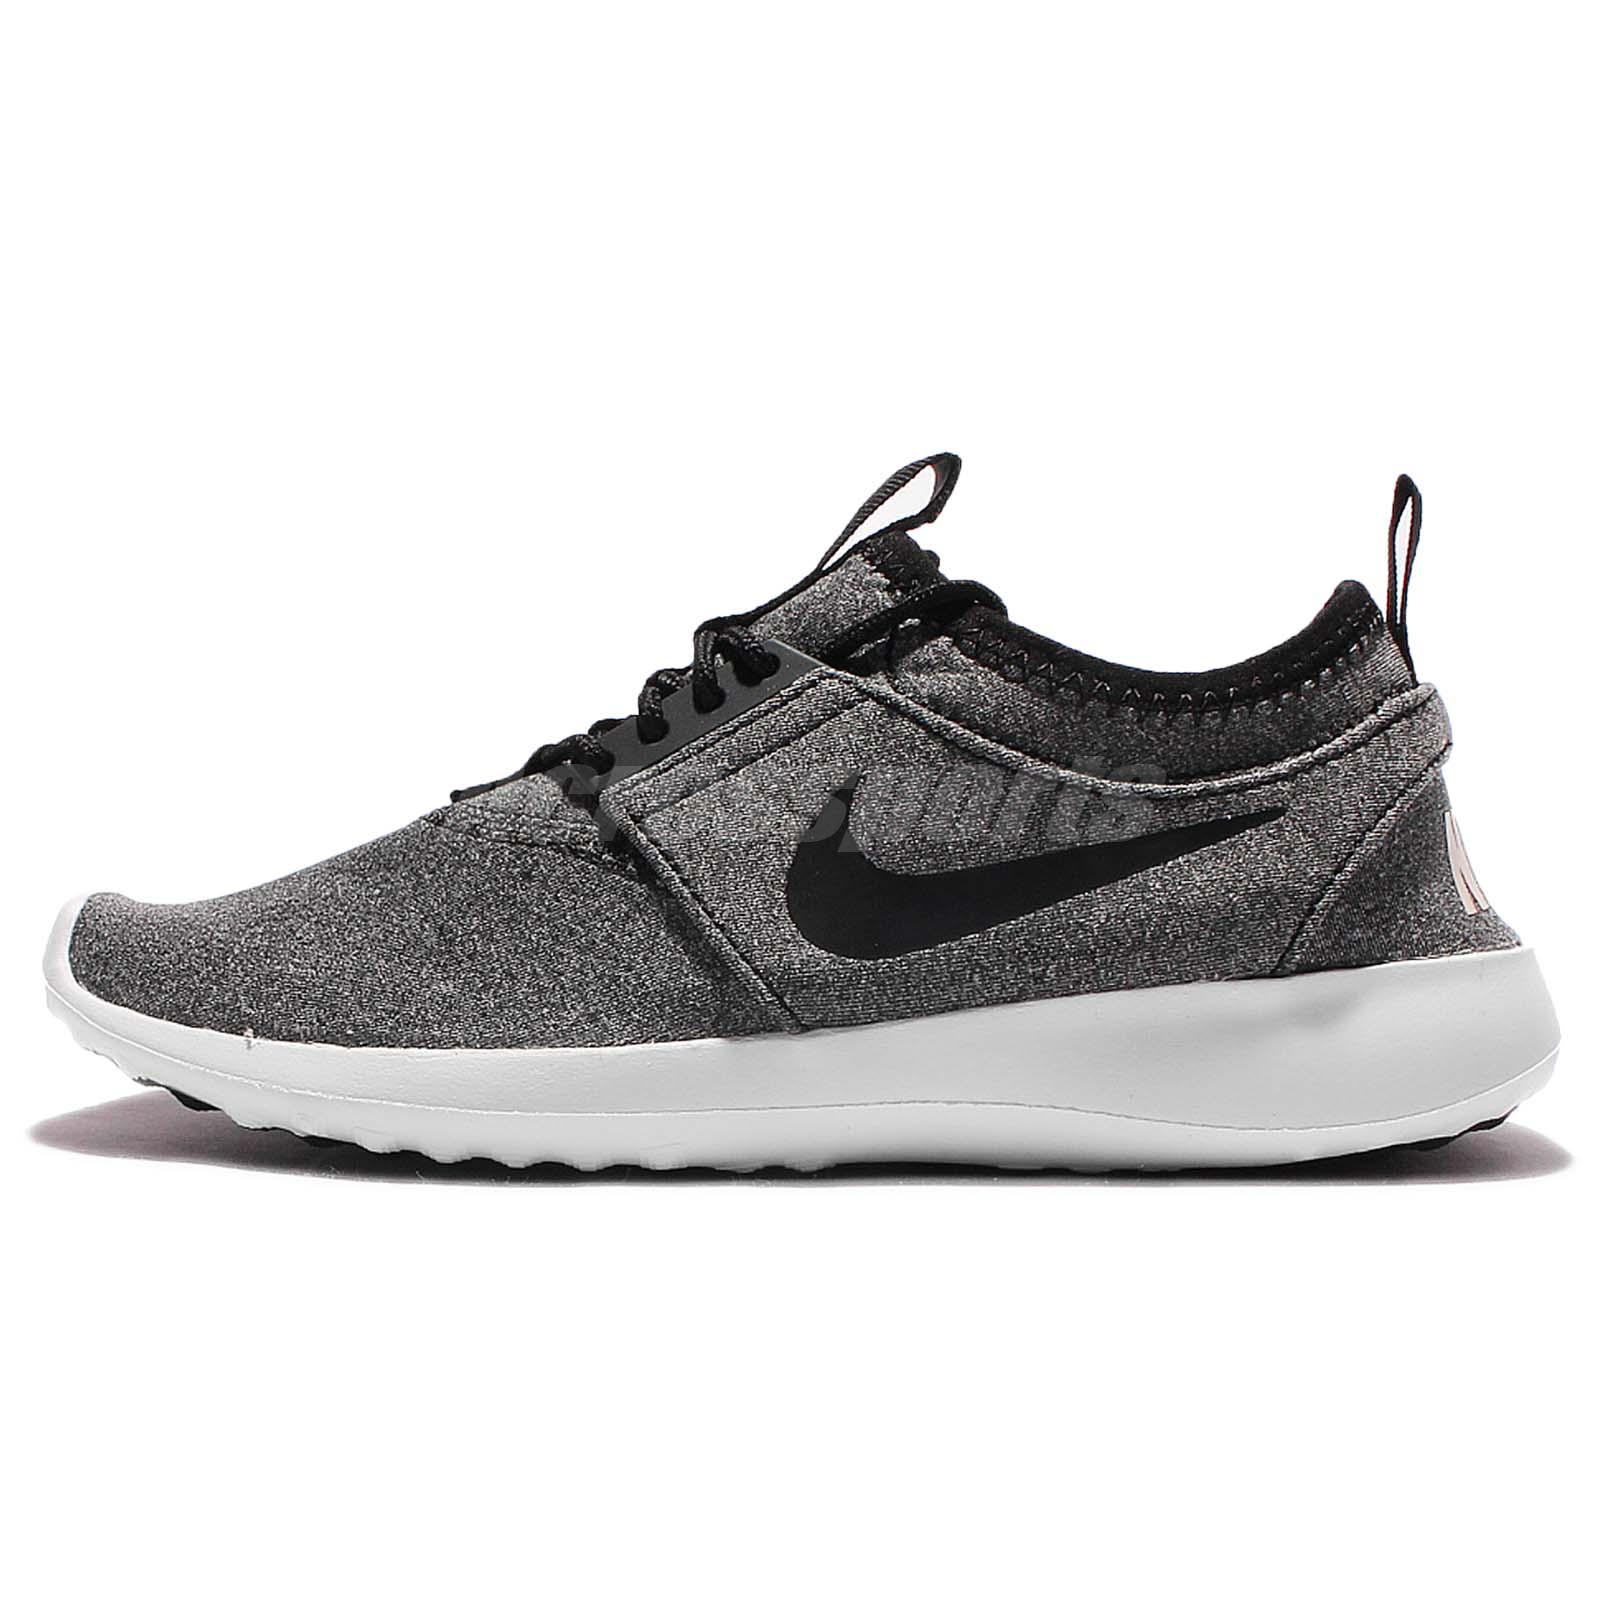 Wmns Nike Juvenate SE Black Grey White Womens Casual Shoes ...